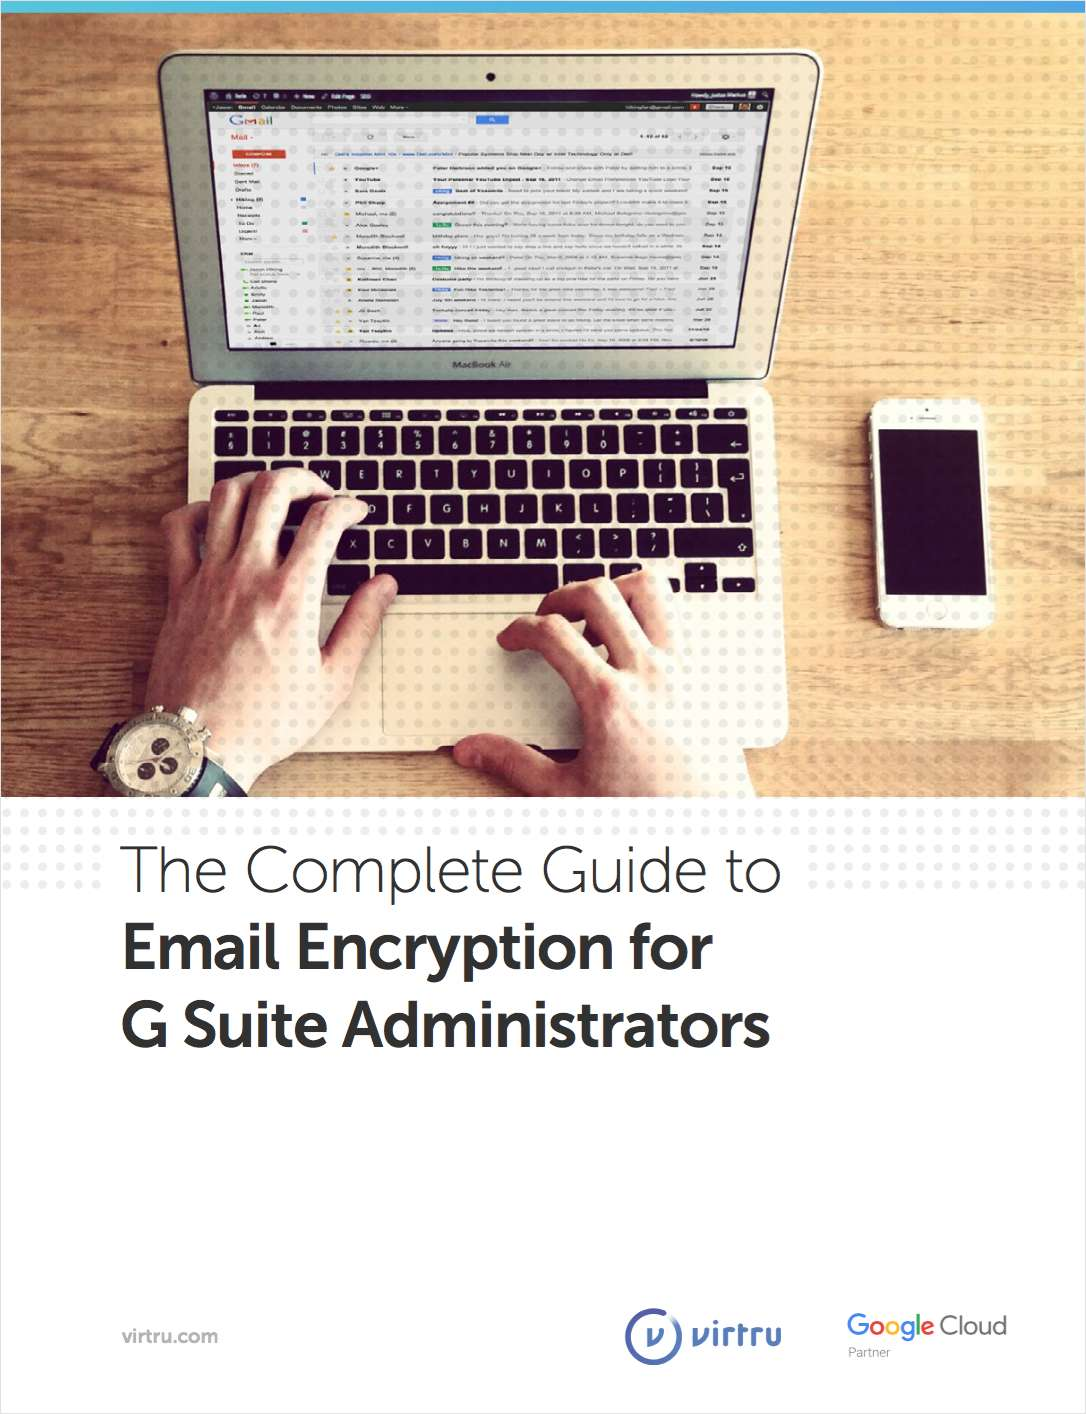 The Complete Guide to Email Encryption for G Suite Administrators